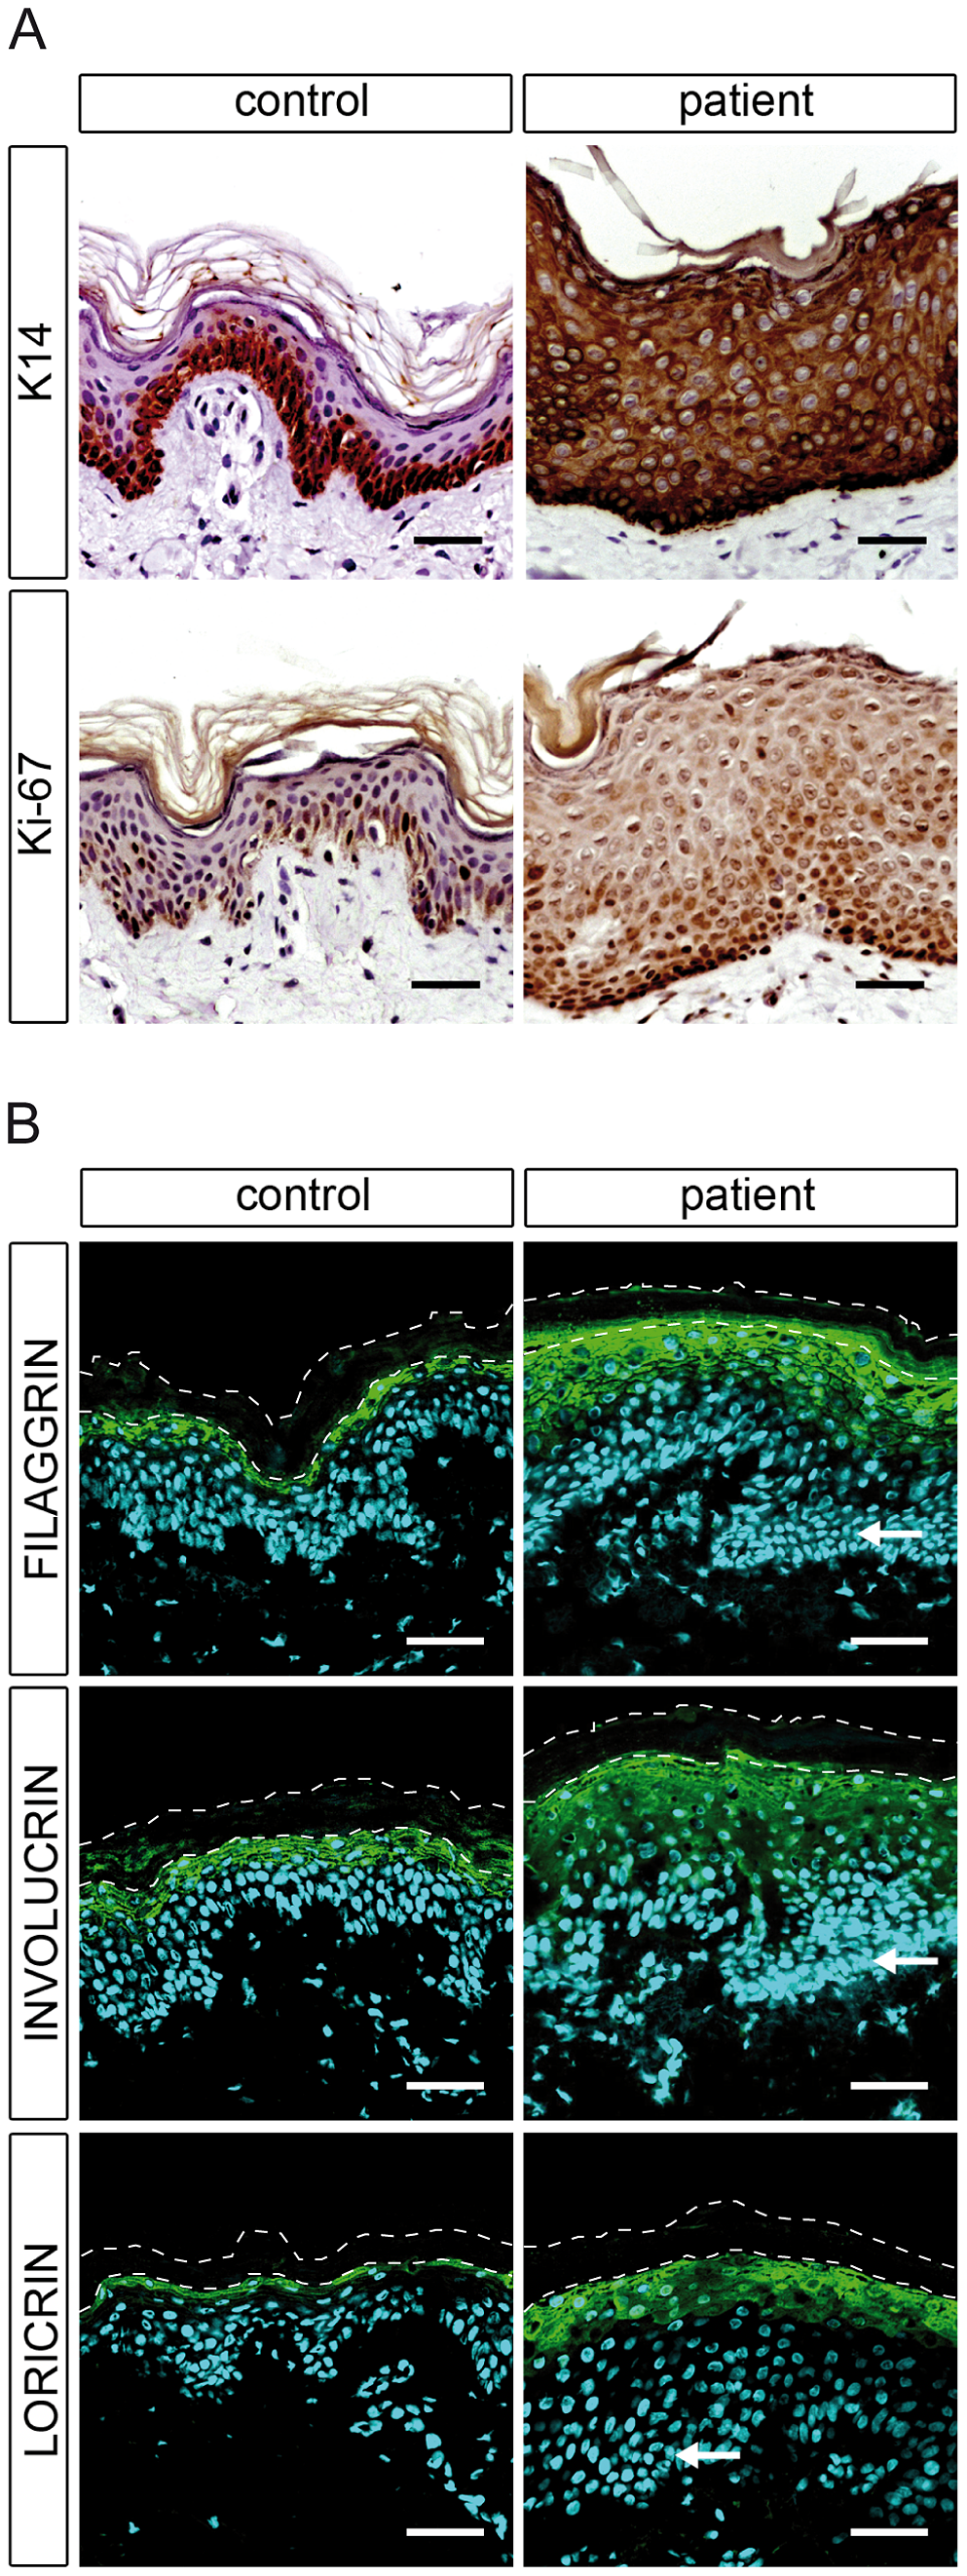 Epidermal differentiation in healthy control and patient H.